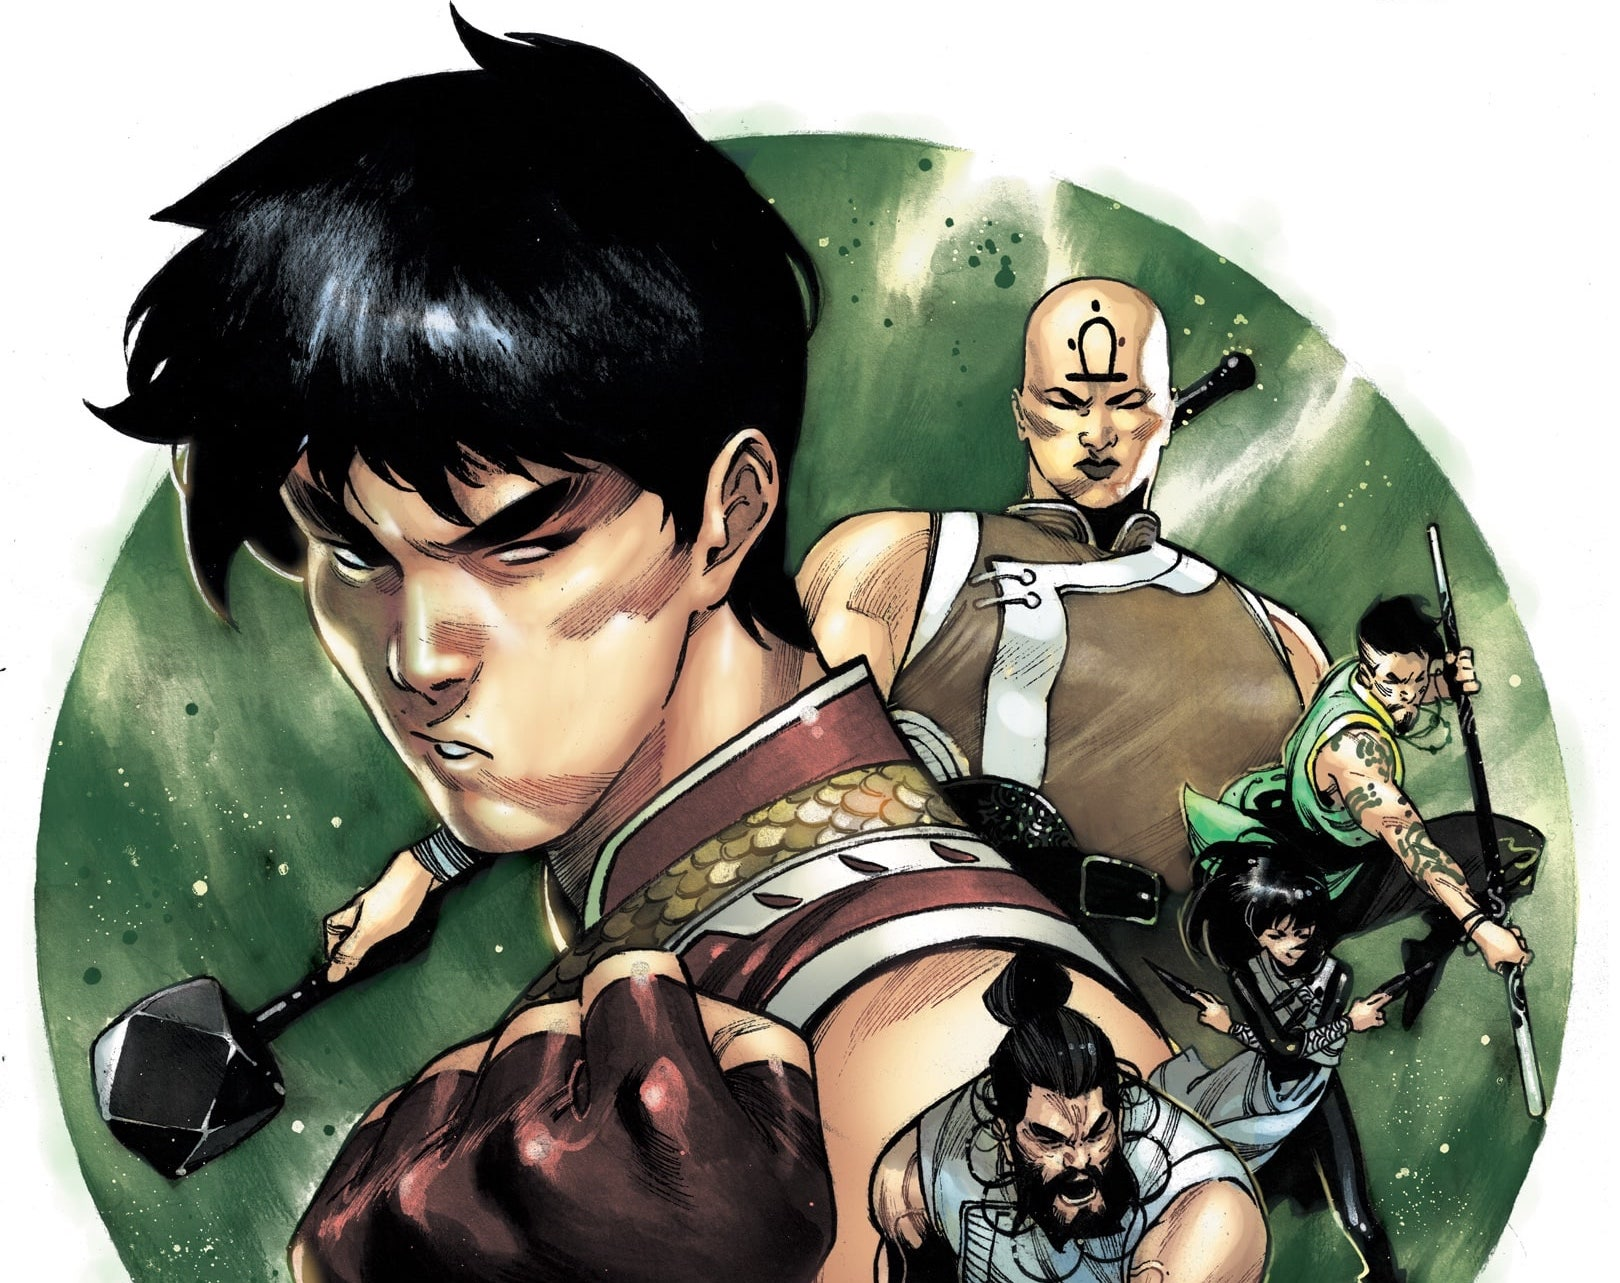 Who is The Five Weapons Society? Find out in Shang-Chi from Marvel Comics.